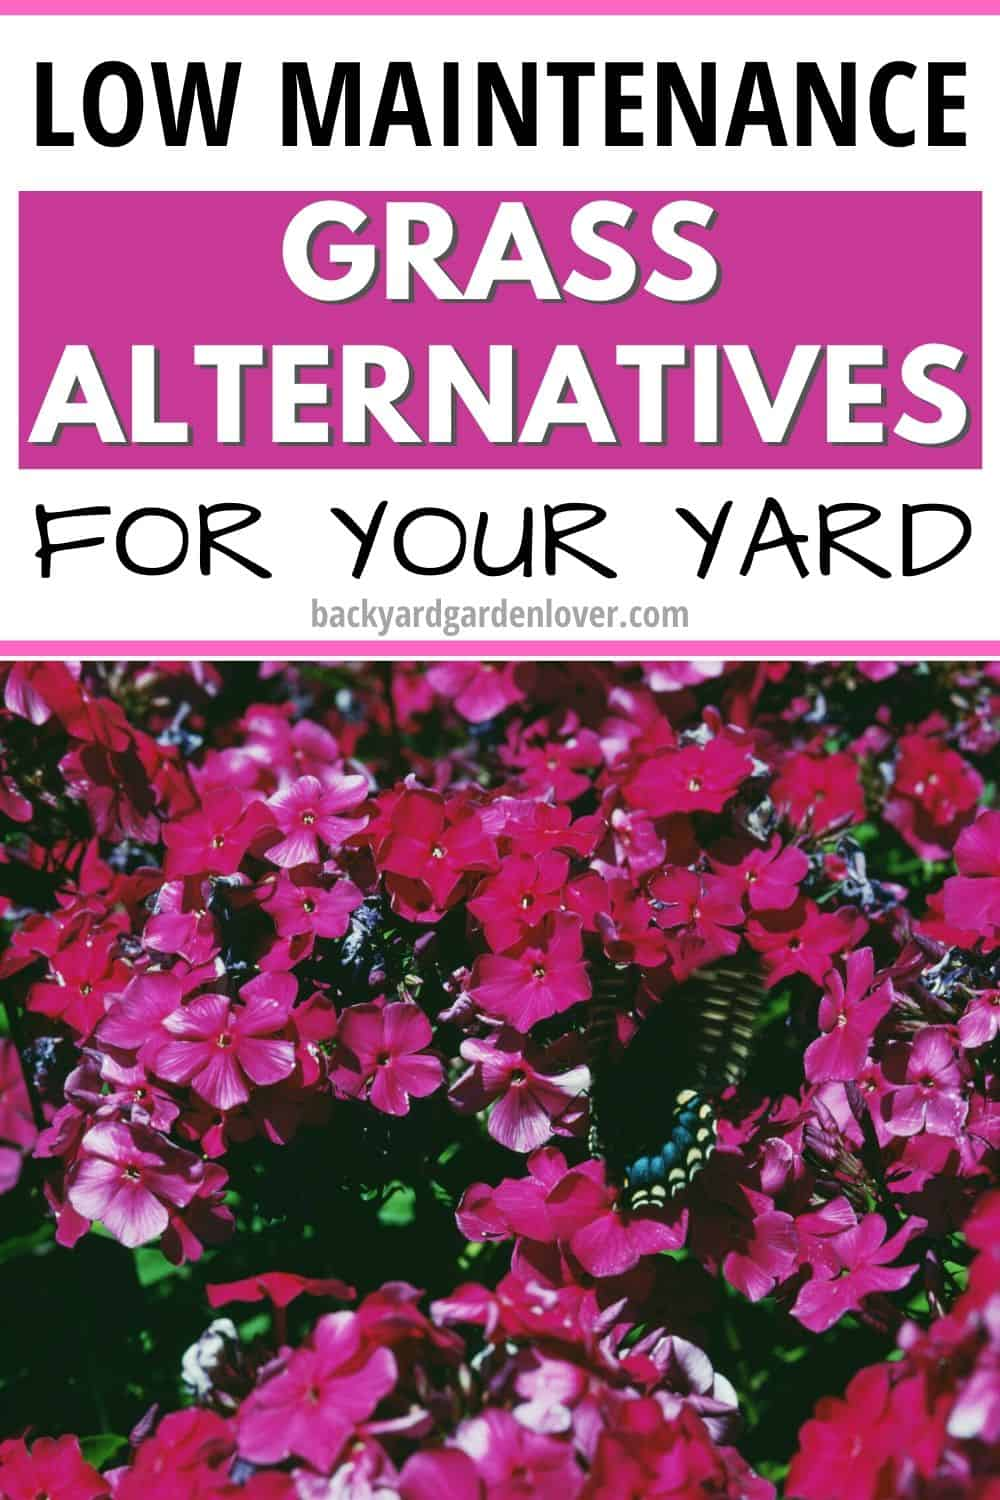 Low maintenance grass alternatives for your yard